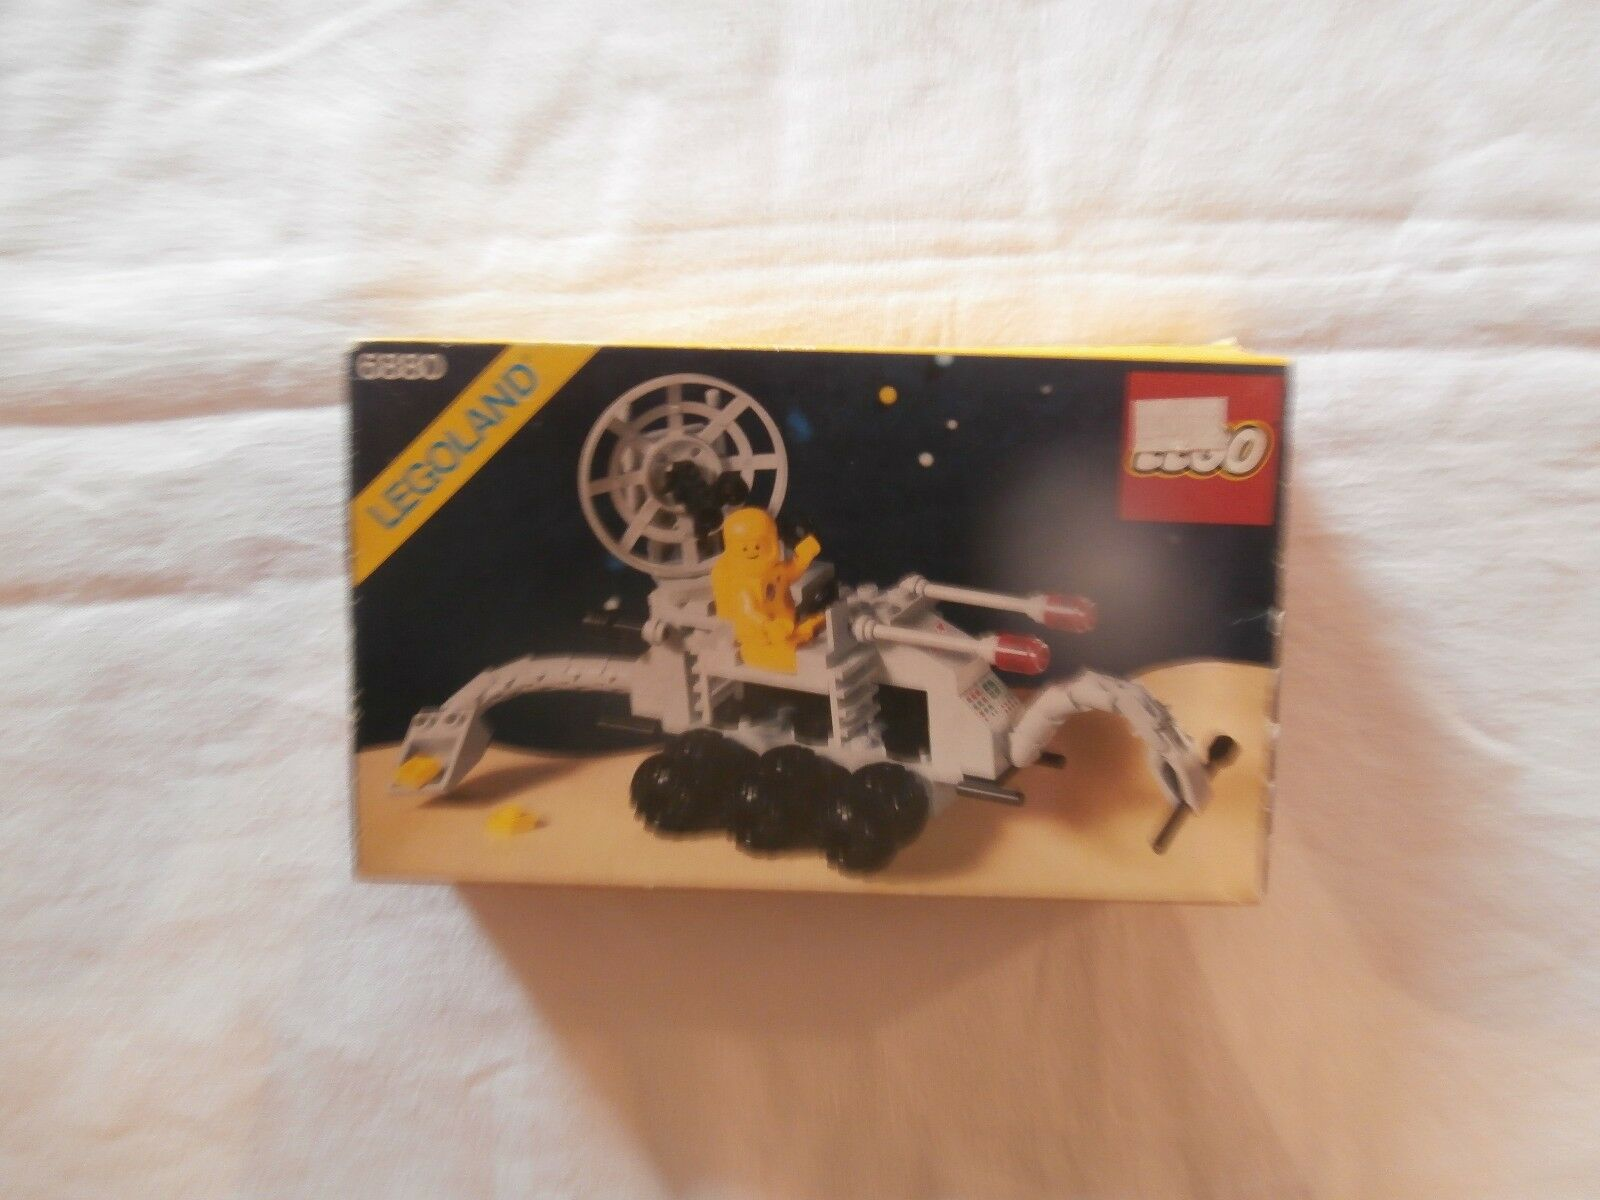 Lego 6880 Surface Eplorer - Classic Space - MISB